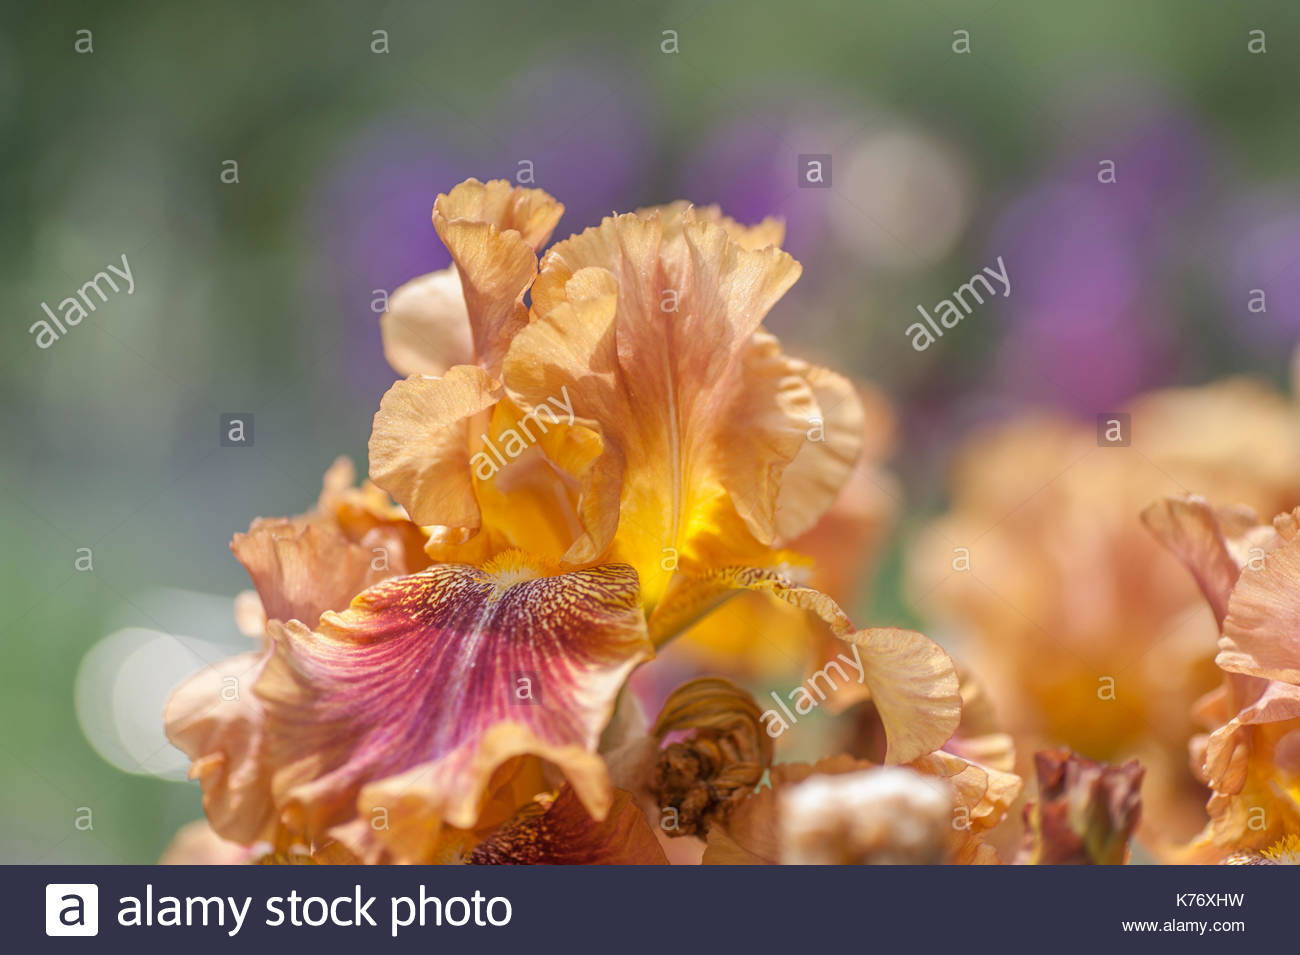 Red iris flower iridaceae stock photos red iris flower iridaceae tall bearded iris autumn leaves in garden in sunny day flower patterns reverse bitone pronofoot35fo Image collections